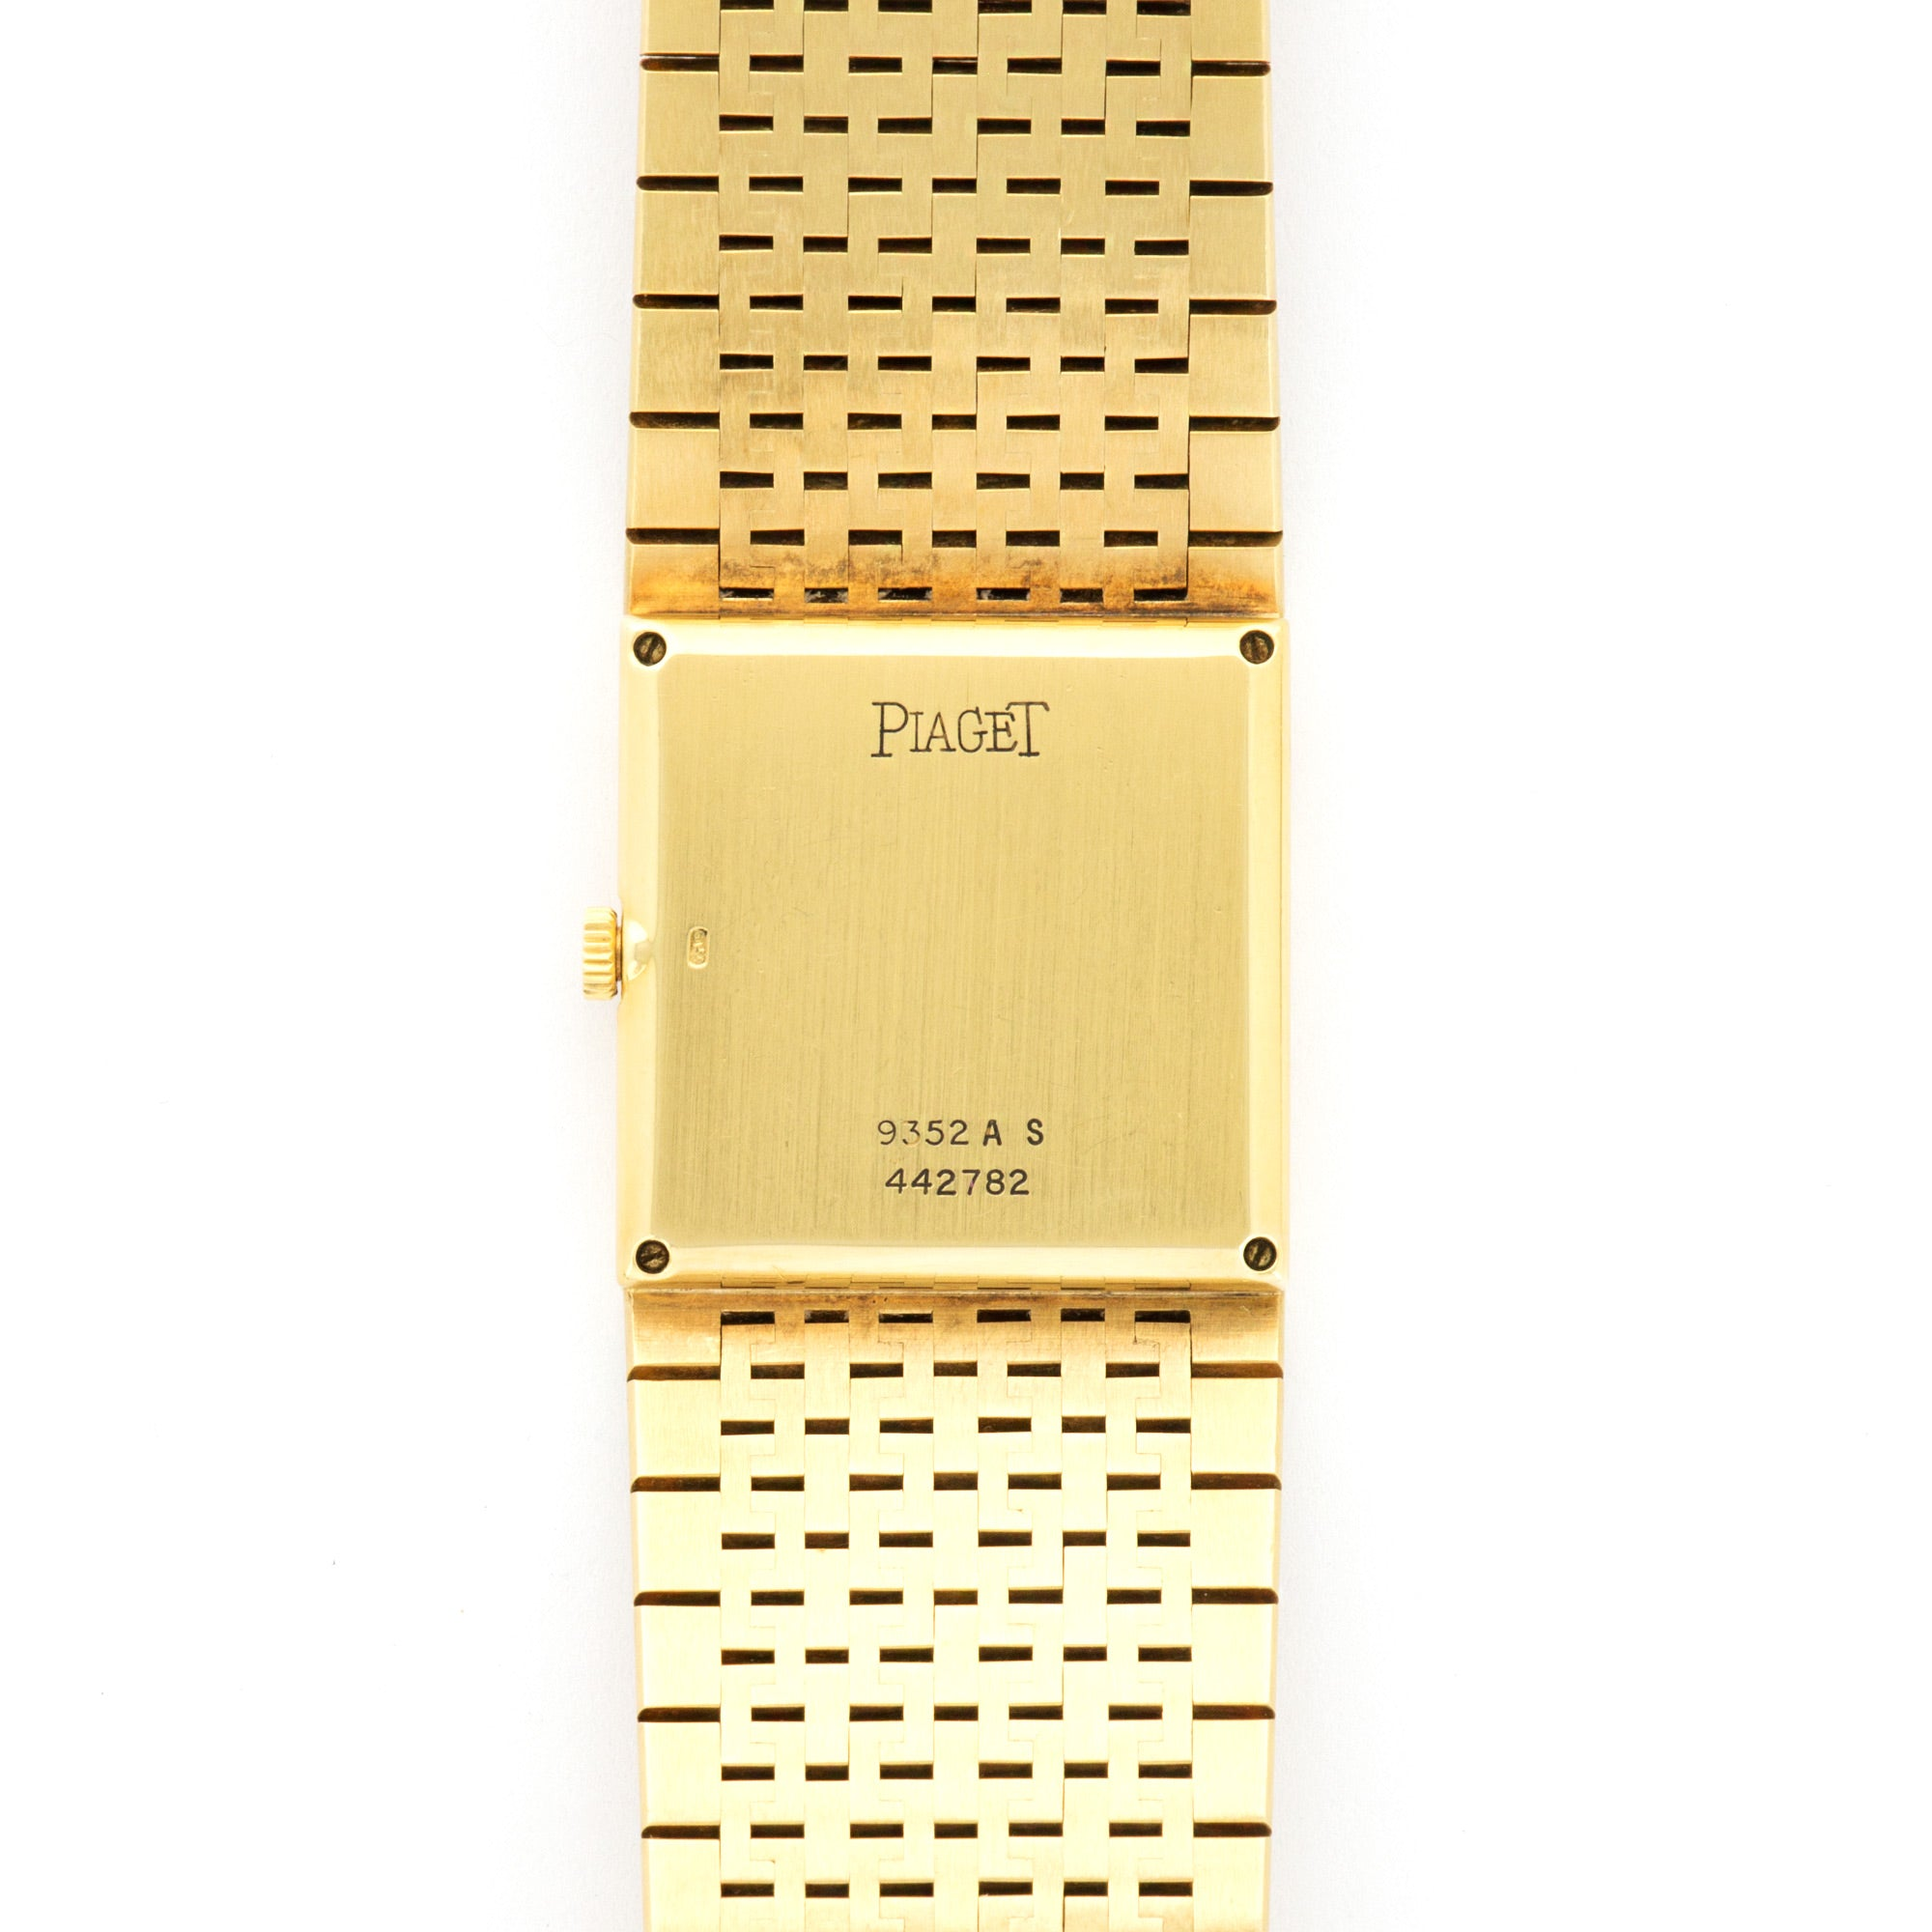 Piaget Vintage 9352 18k YG  Excellent Unisex 18k YG Lapis with Pave Diamonds 23.2mm X 25mm Manual 1970s Yellow Gold Bracelet (185mm) N/A